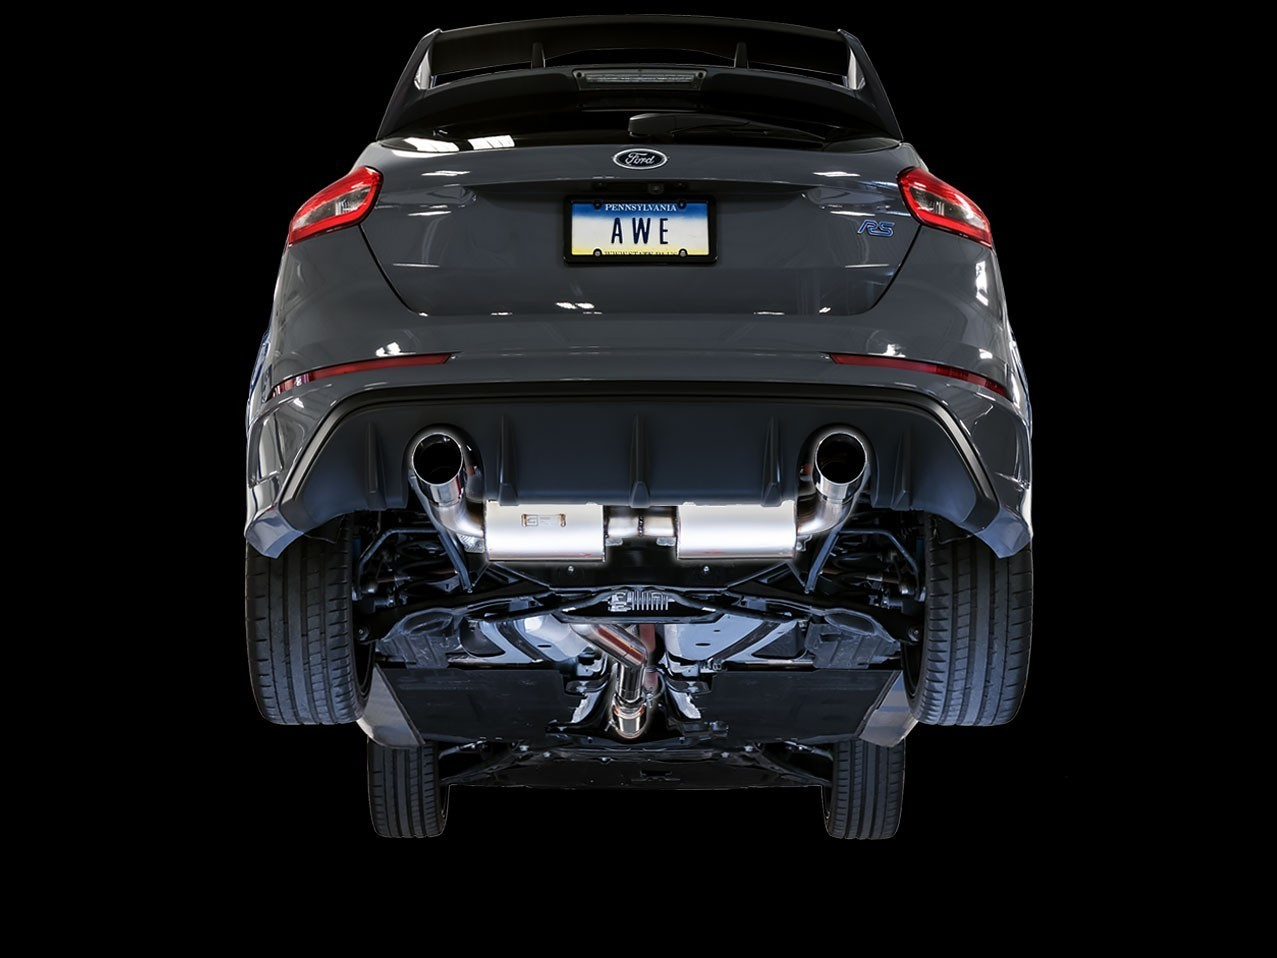 AWE Touring Edition Cat-back Exhaust for Ford Focus RS- Resonated - Chrome Silver Tips